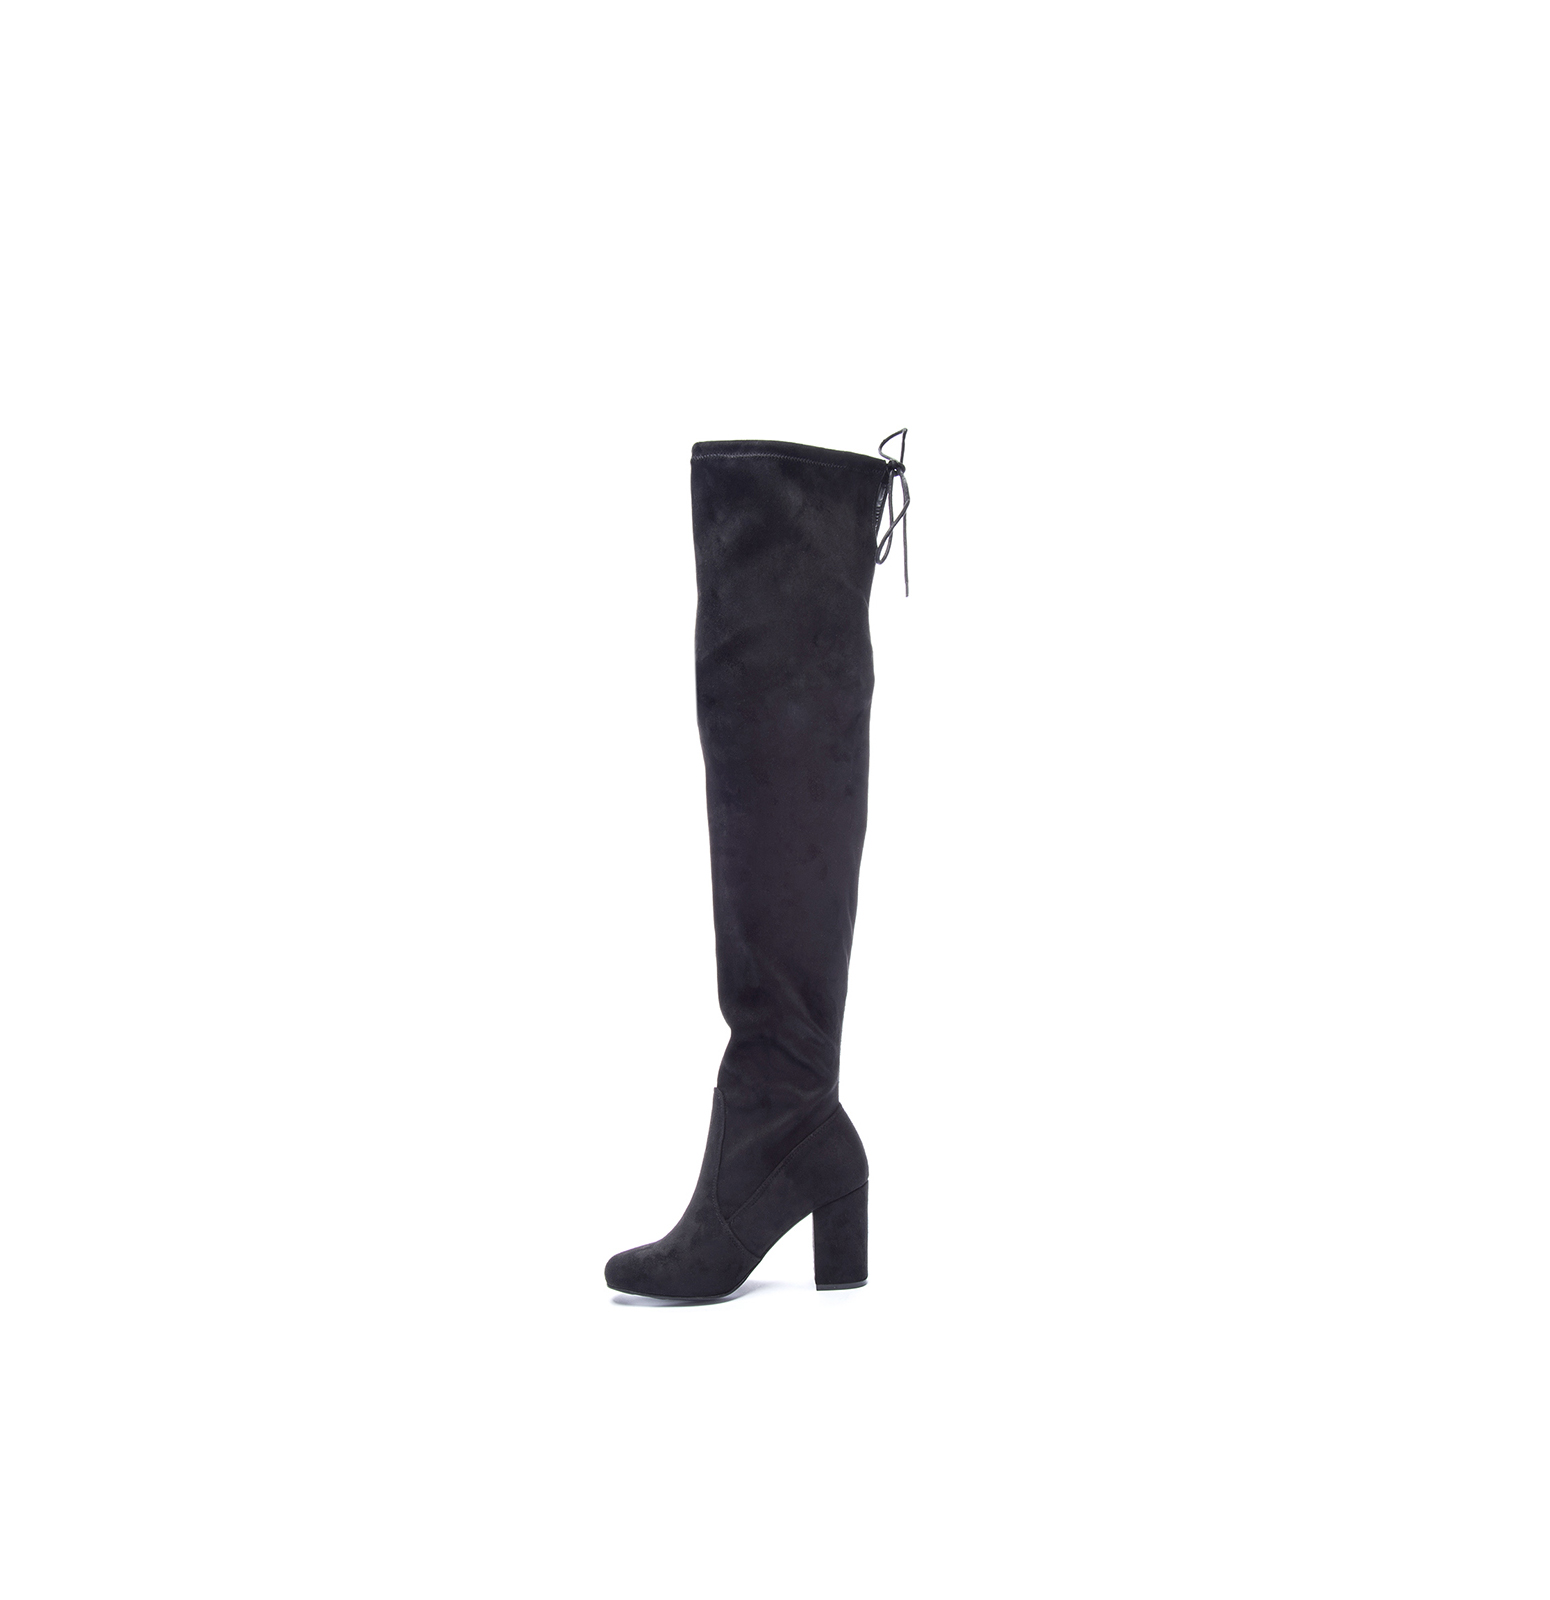 decea385026 Over-the-Knee. Chinese Laundry Kiara Over the Knee Boot